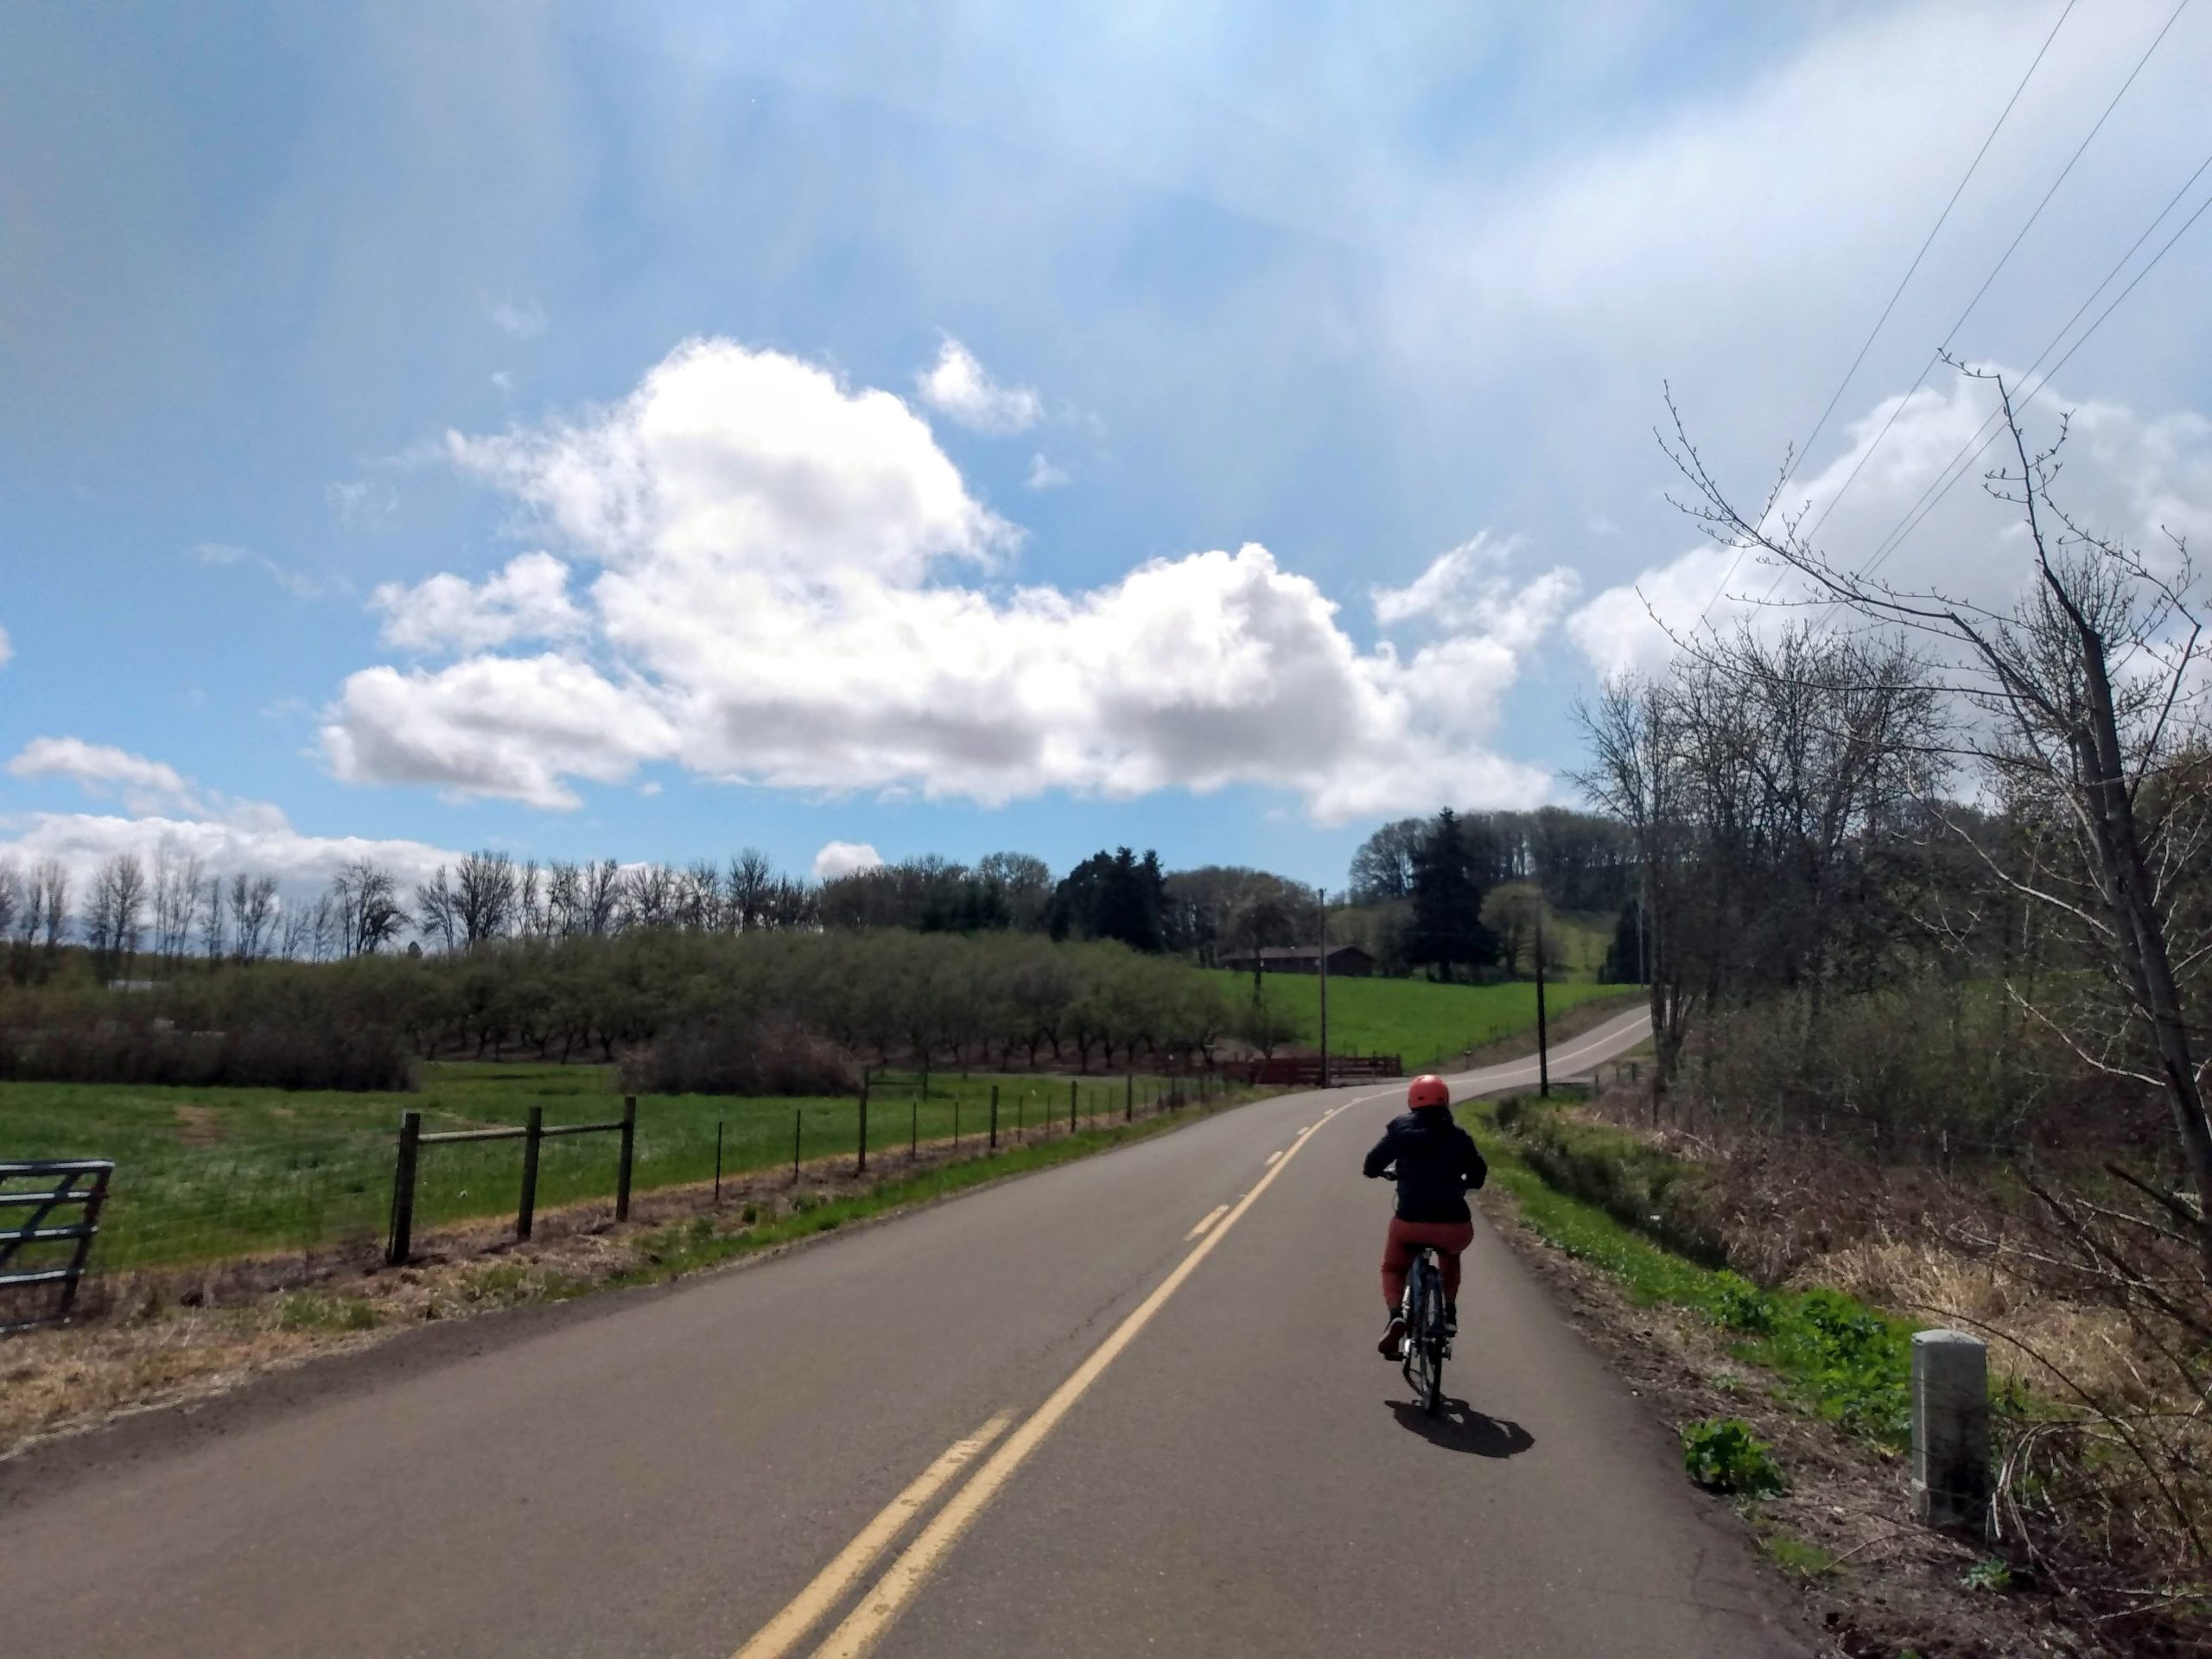 Biking on a country road